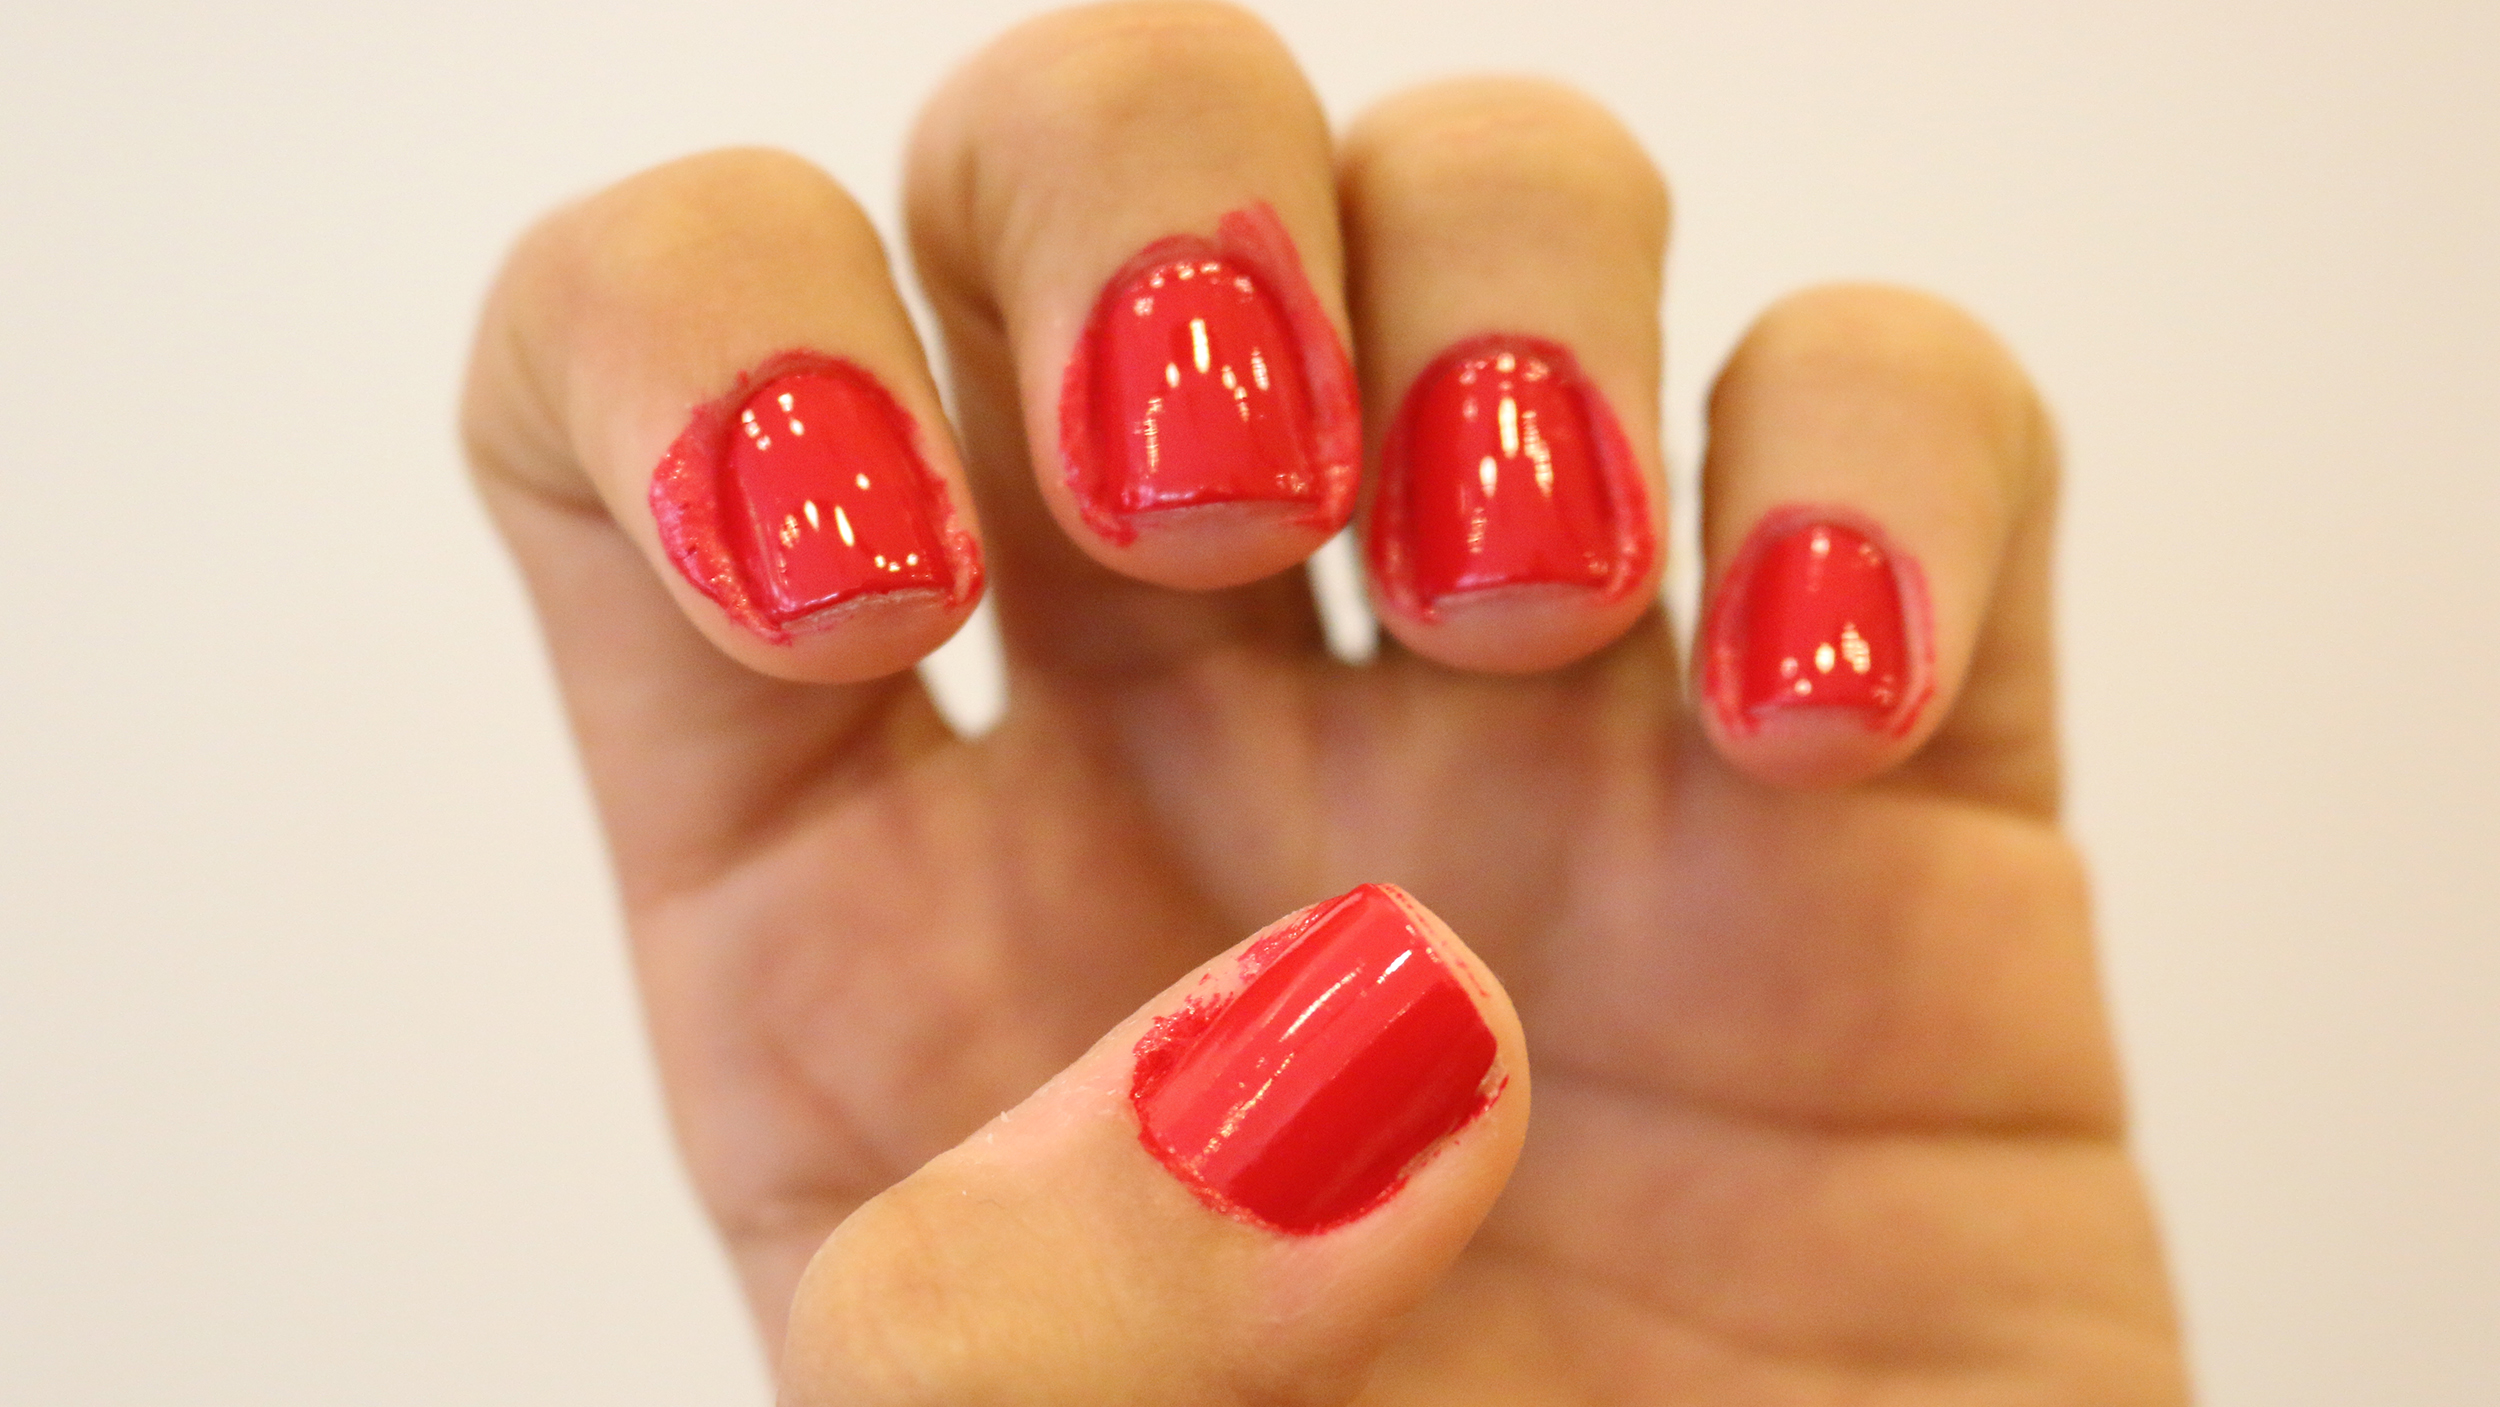 Brazilian manicure: The messy treatment that lasts even longer